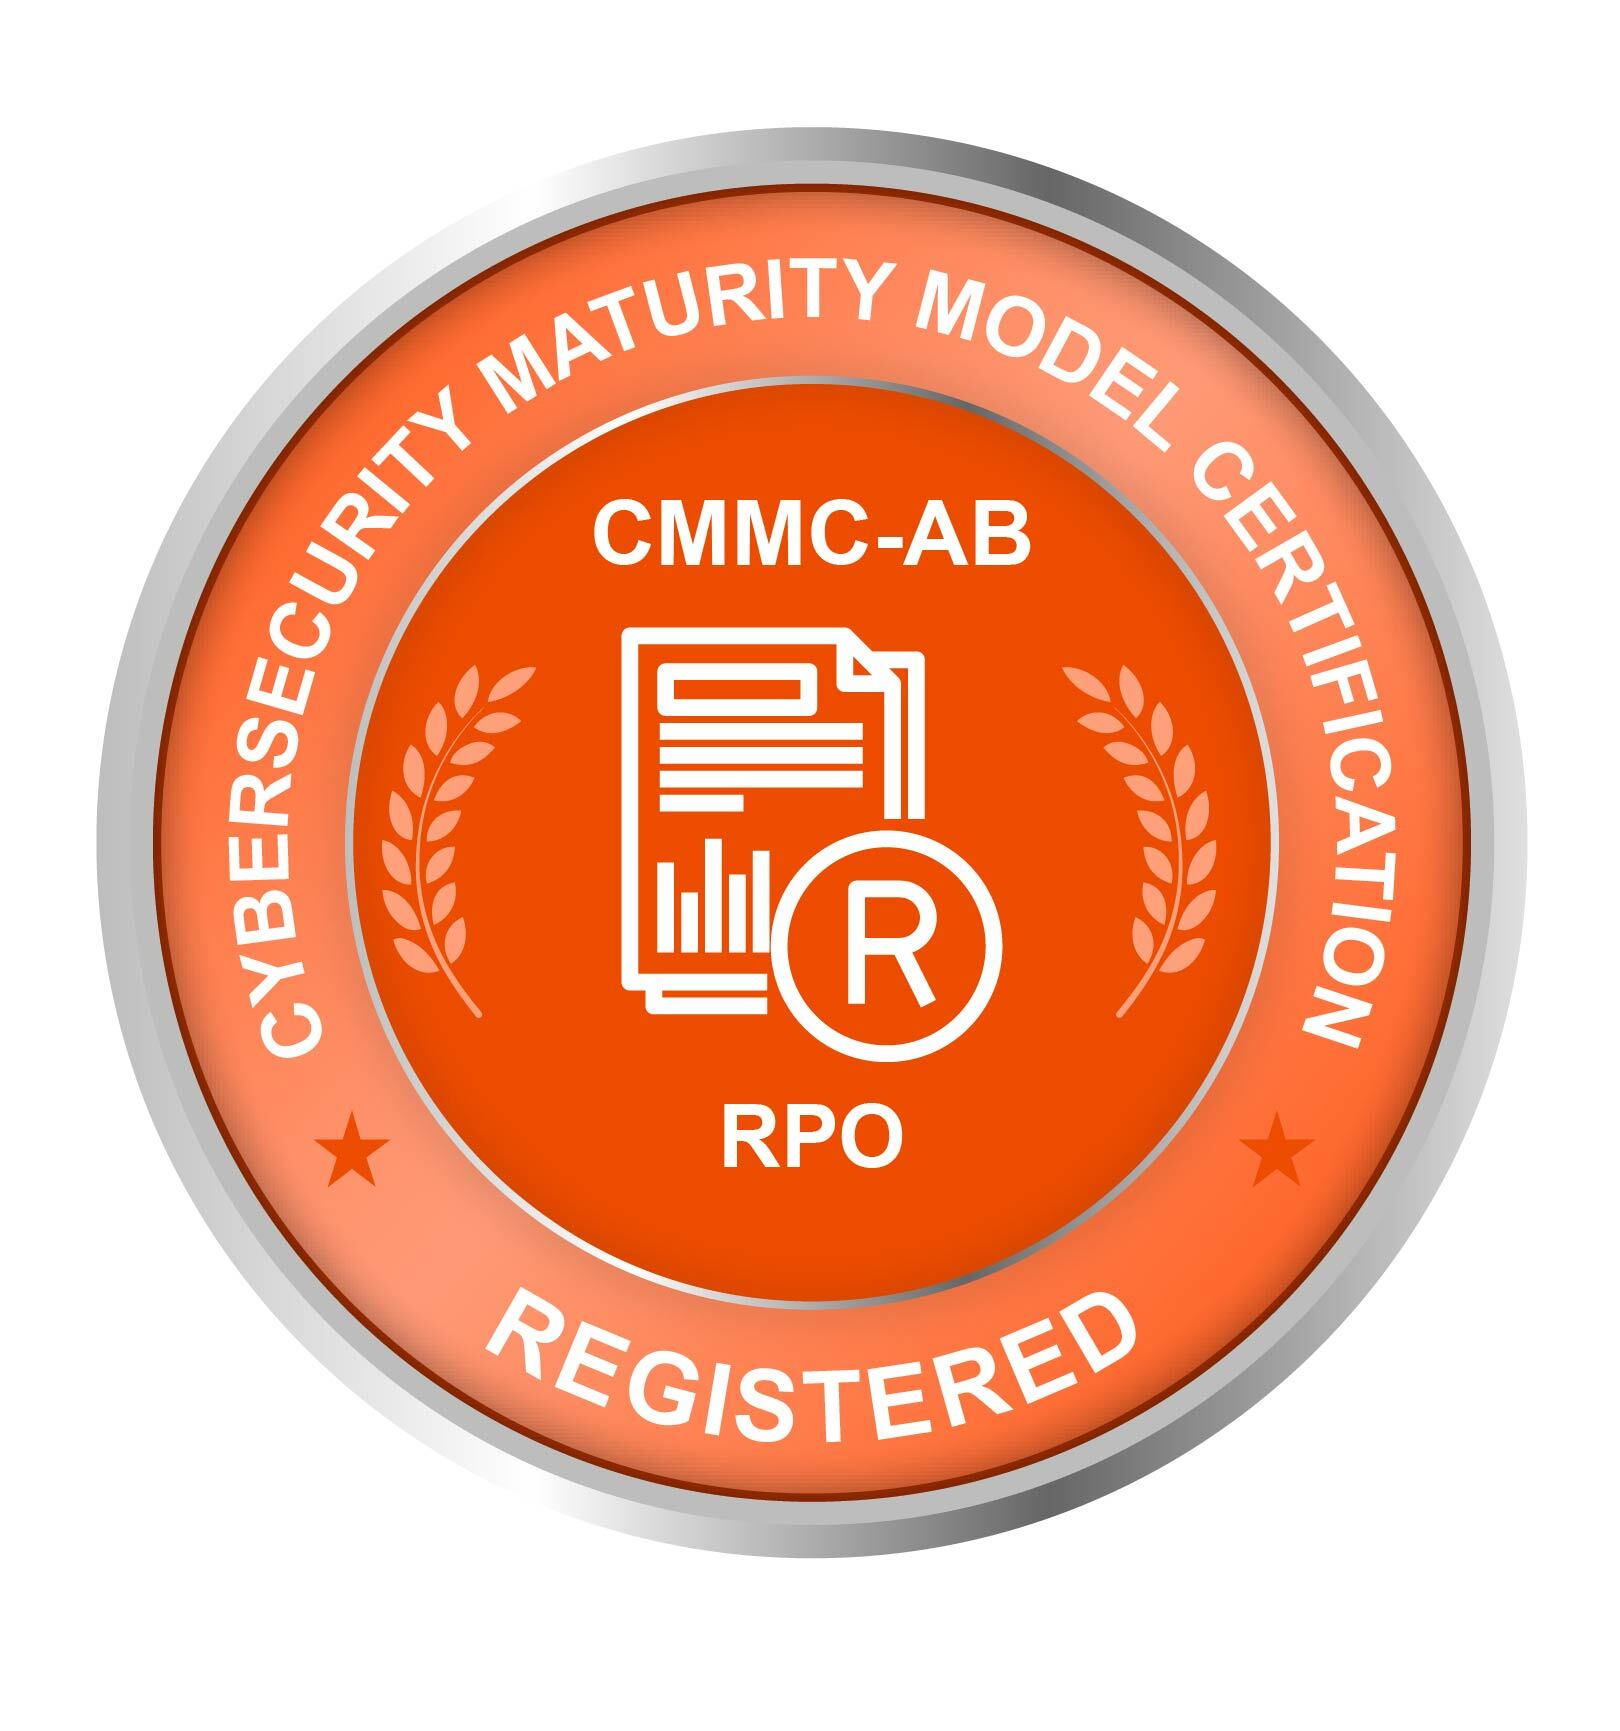 Emagined Security Becomes a CMMC-AB Certified Registered Provider Organization